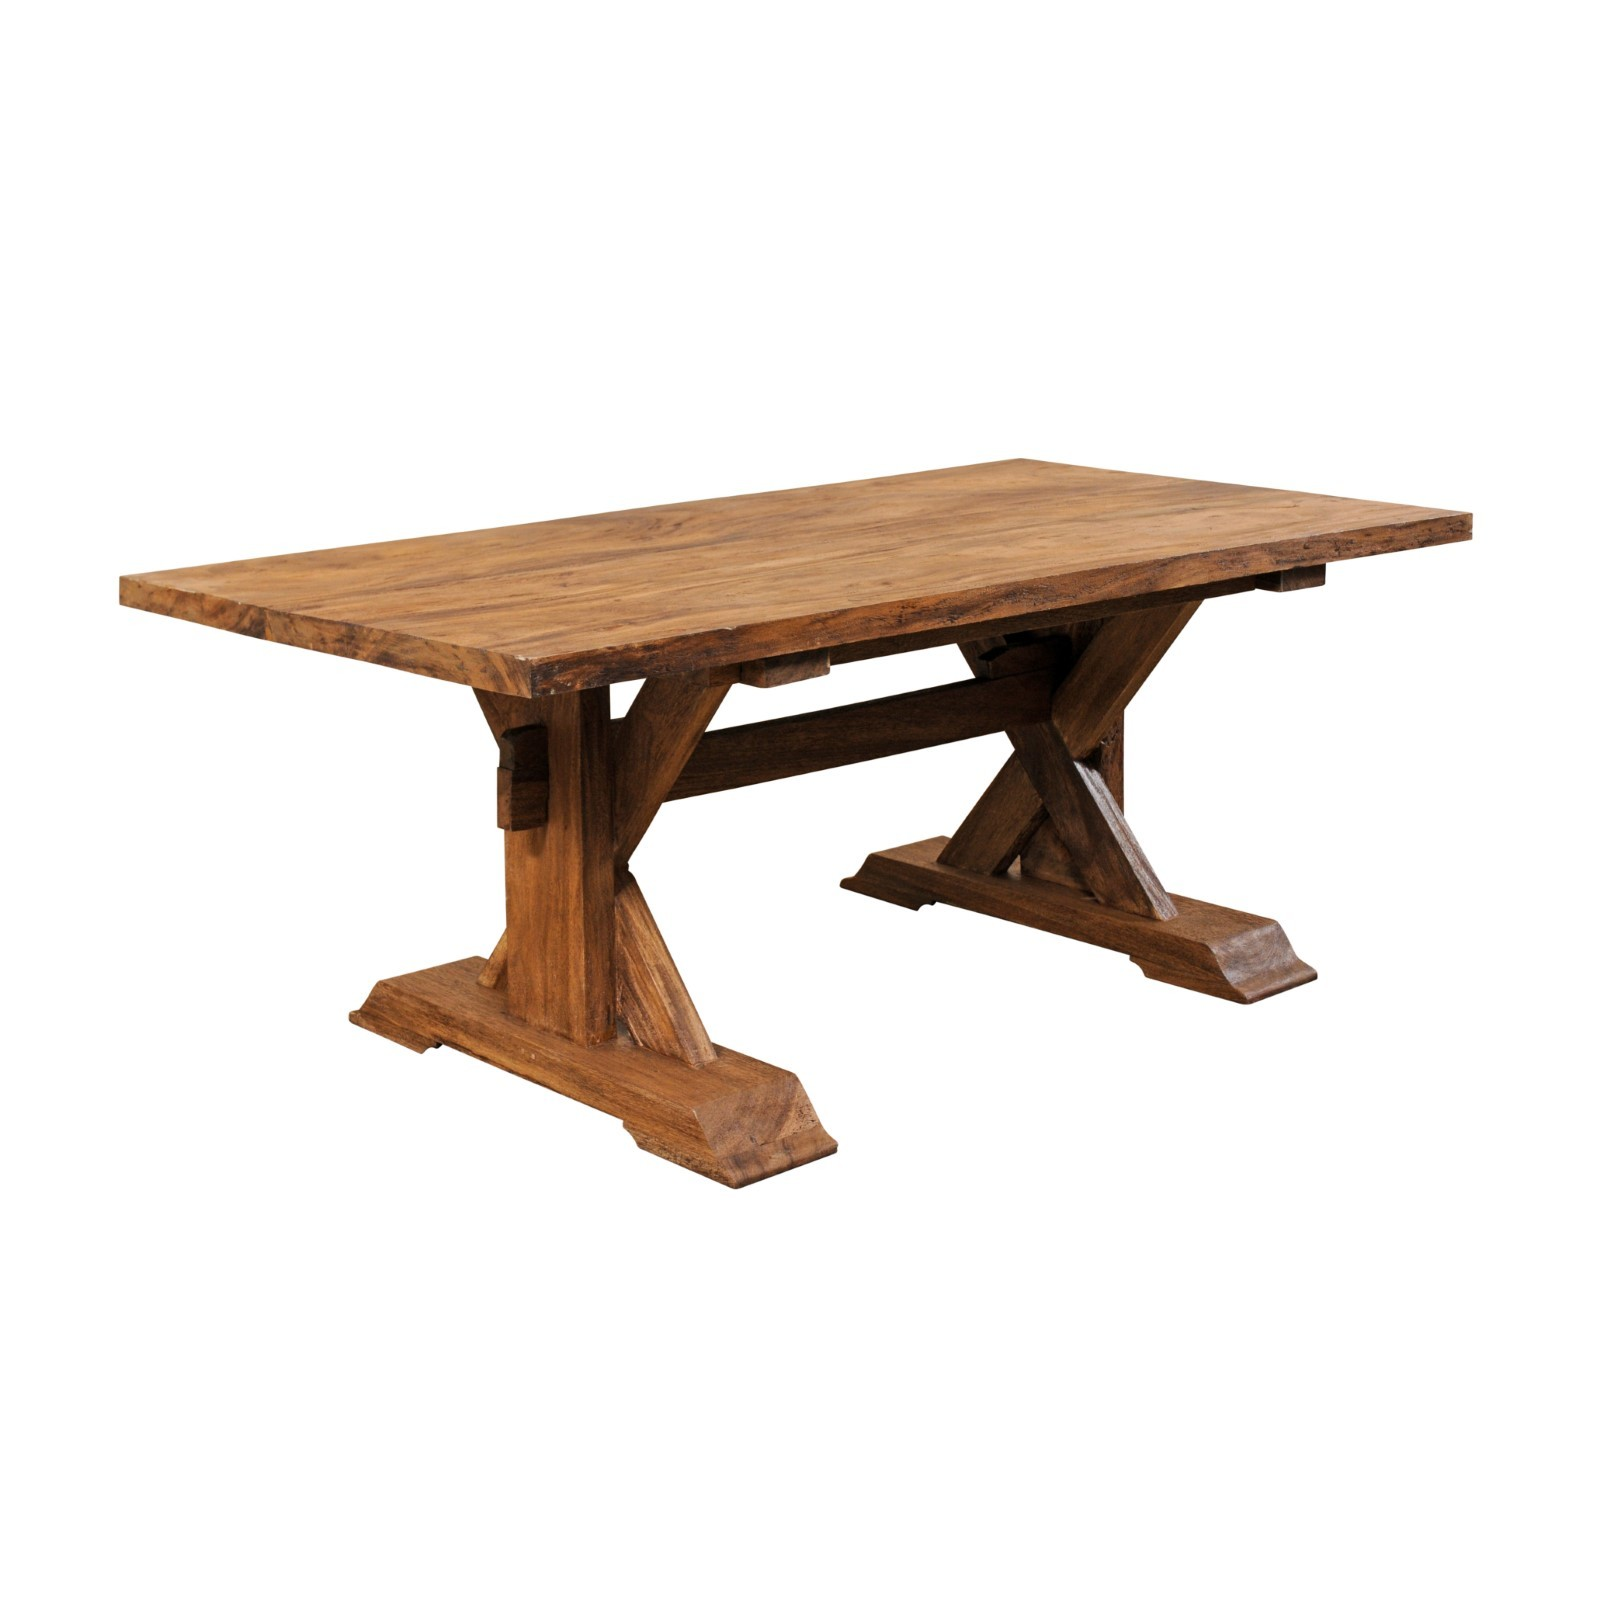 Rectangular-Top Trestle Table, 6.5+ Ft